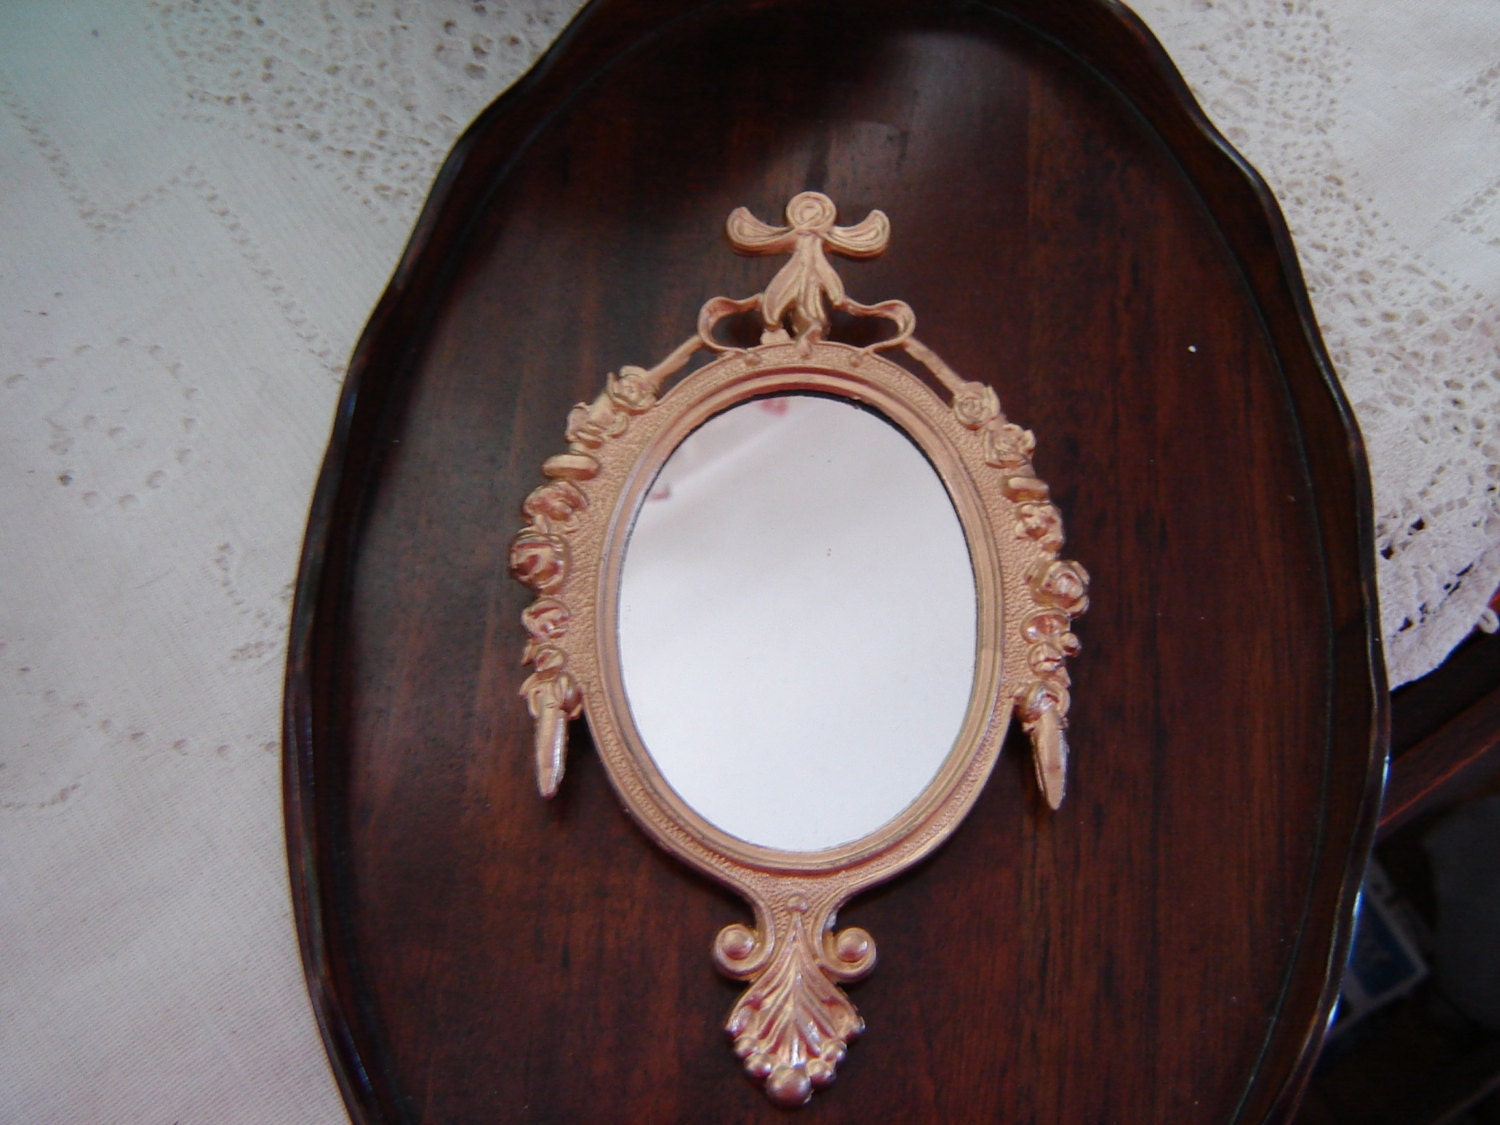 Painted Gold Mirrors-Italian Metal Mirrors-Wall Hanging-6x4